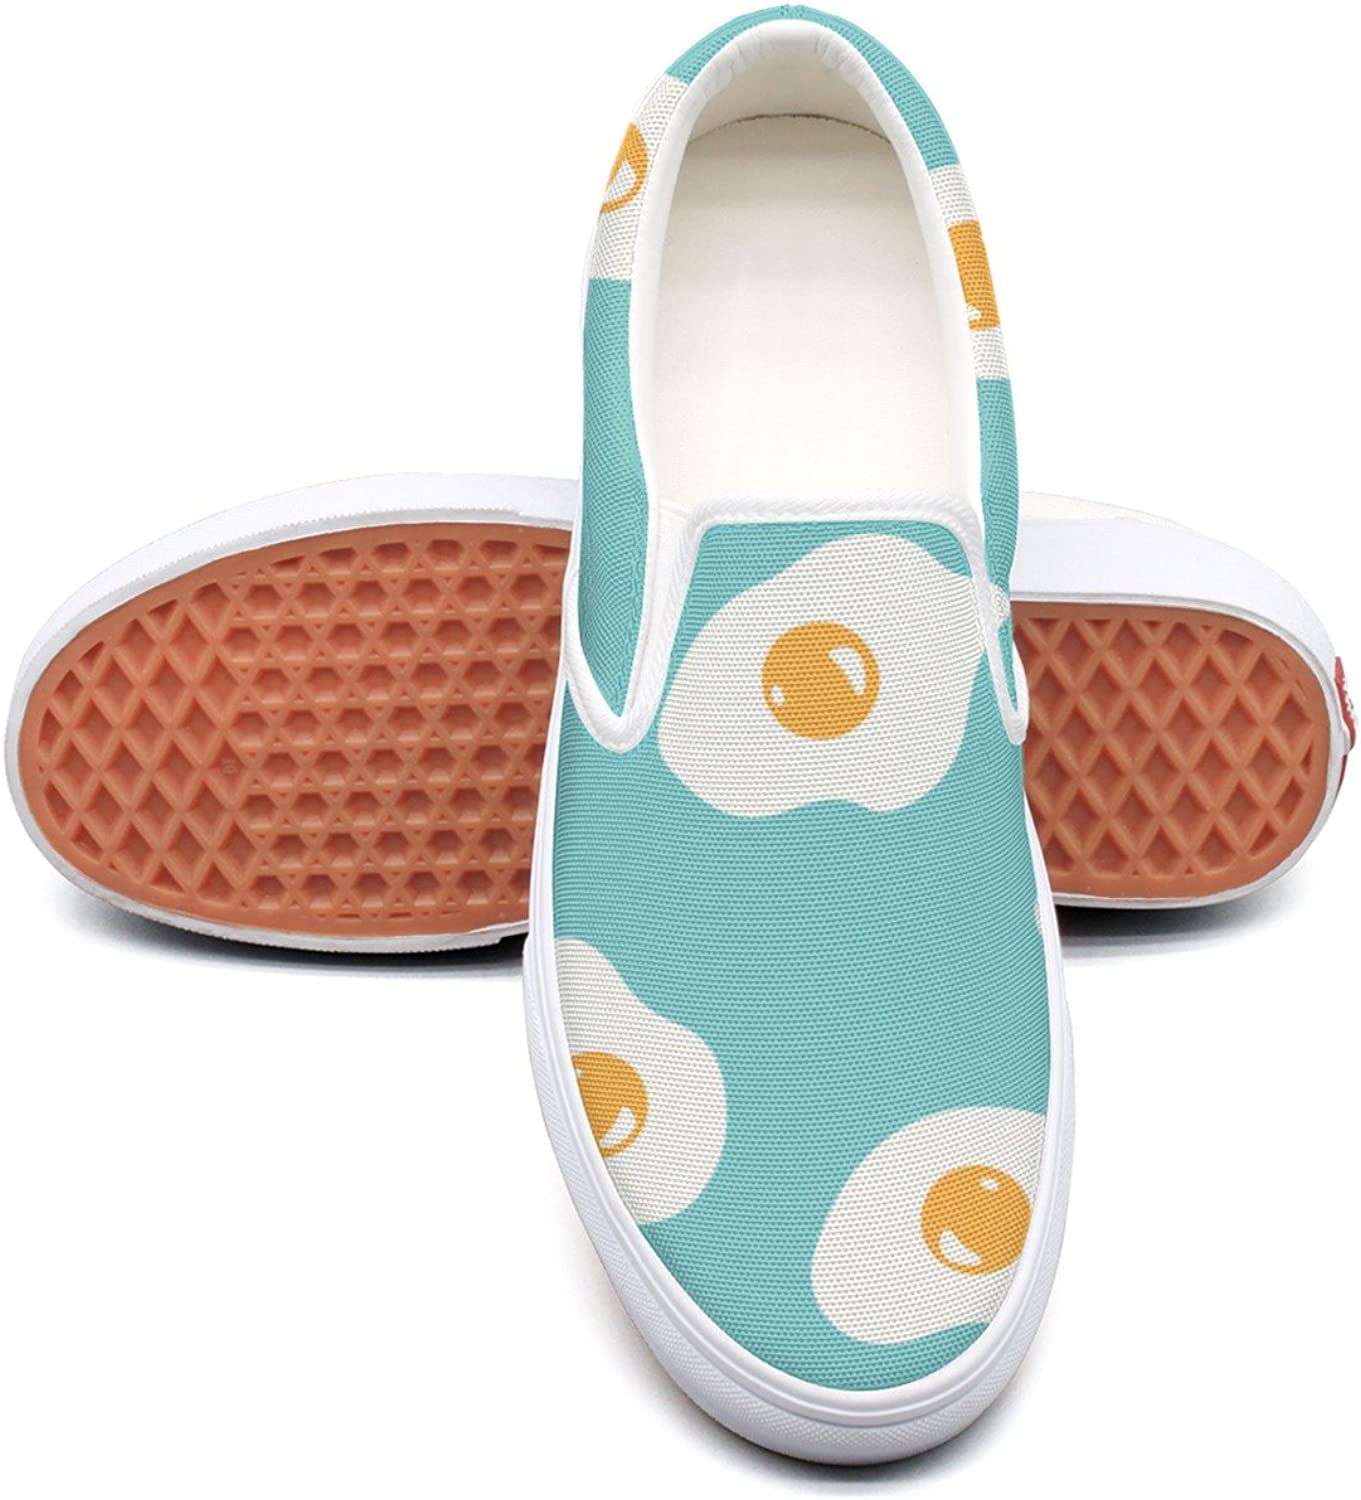 Fried Egg Repeat Womens Fashion Canvas Boat shoes Low Top Hip Hop Basketball shoes For Women Girls